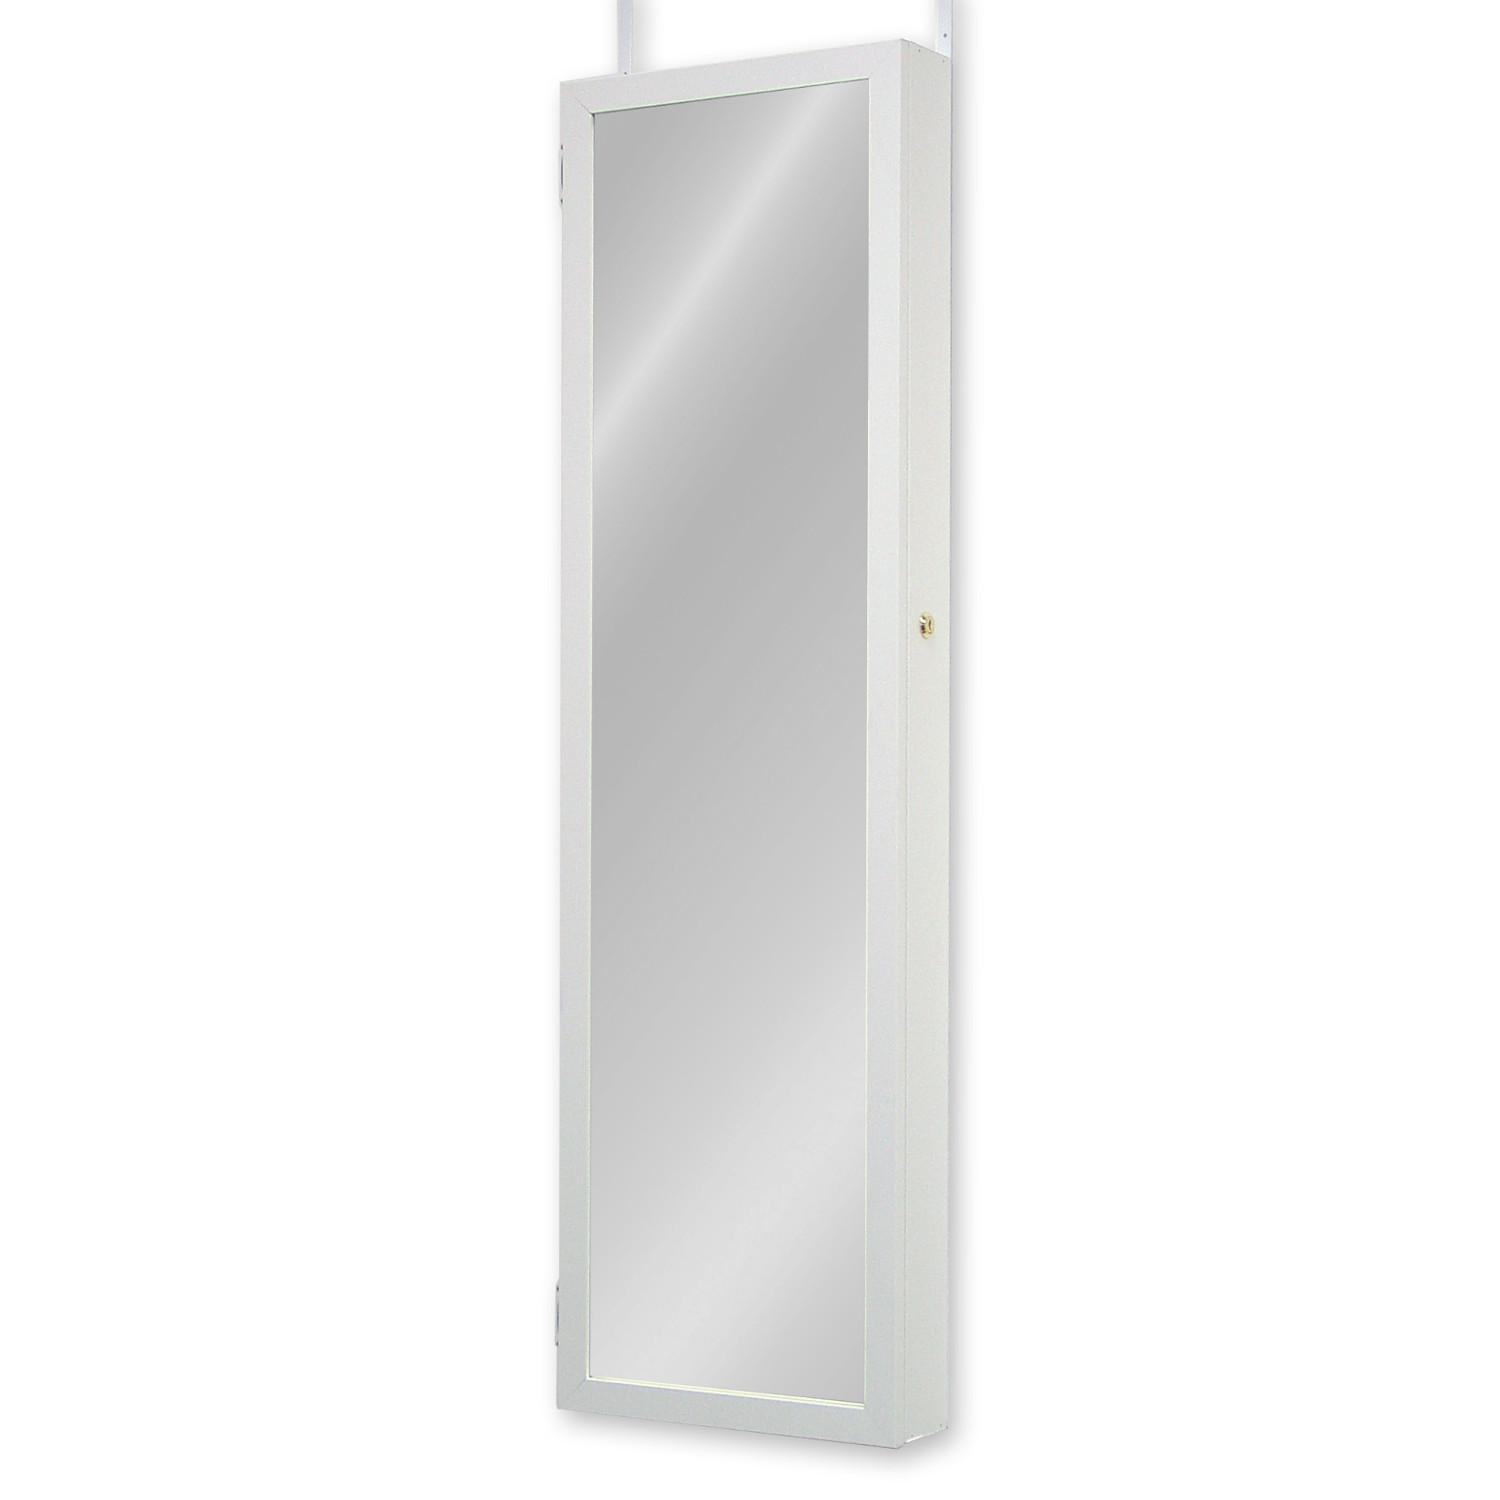 Combination armoire door built in jewelry makeup mirror for White framed full length mirror